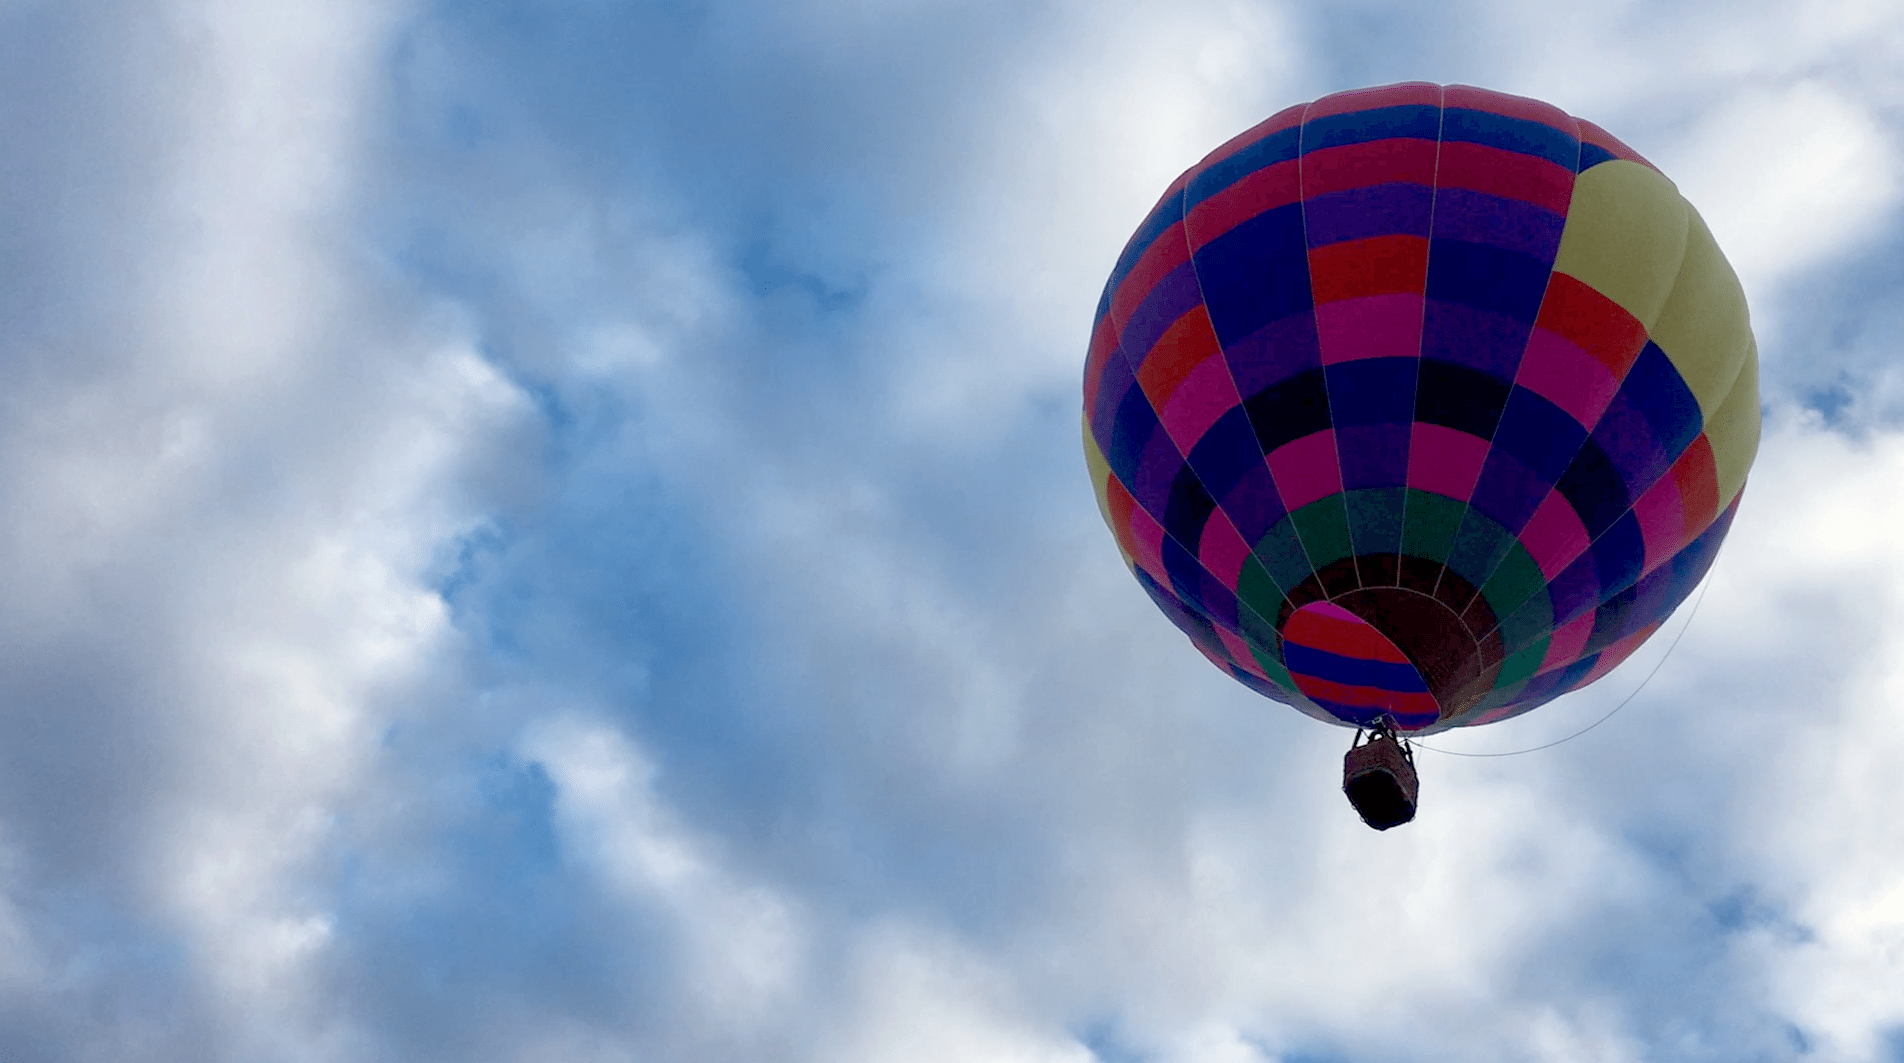 Best Destinations to Take a Hot Air Balloon Ride